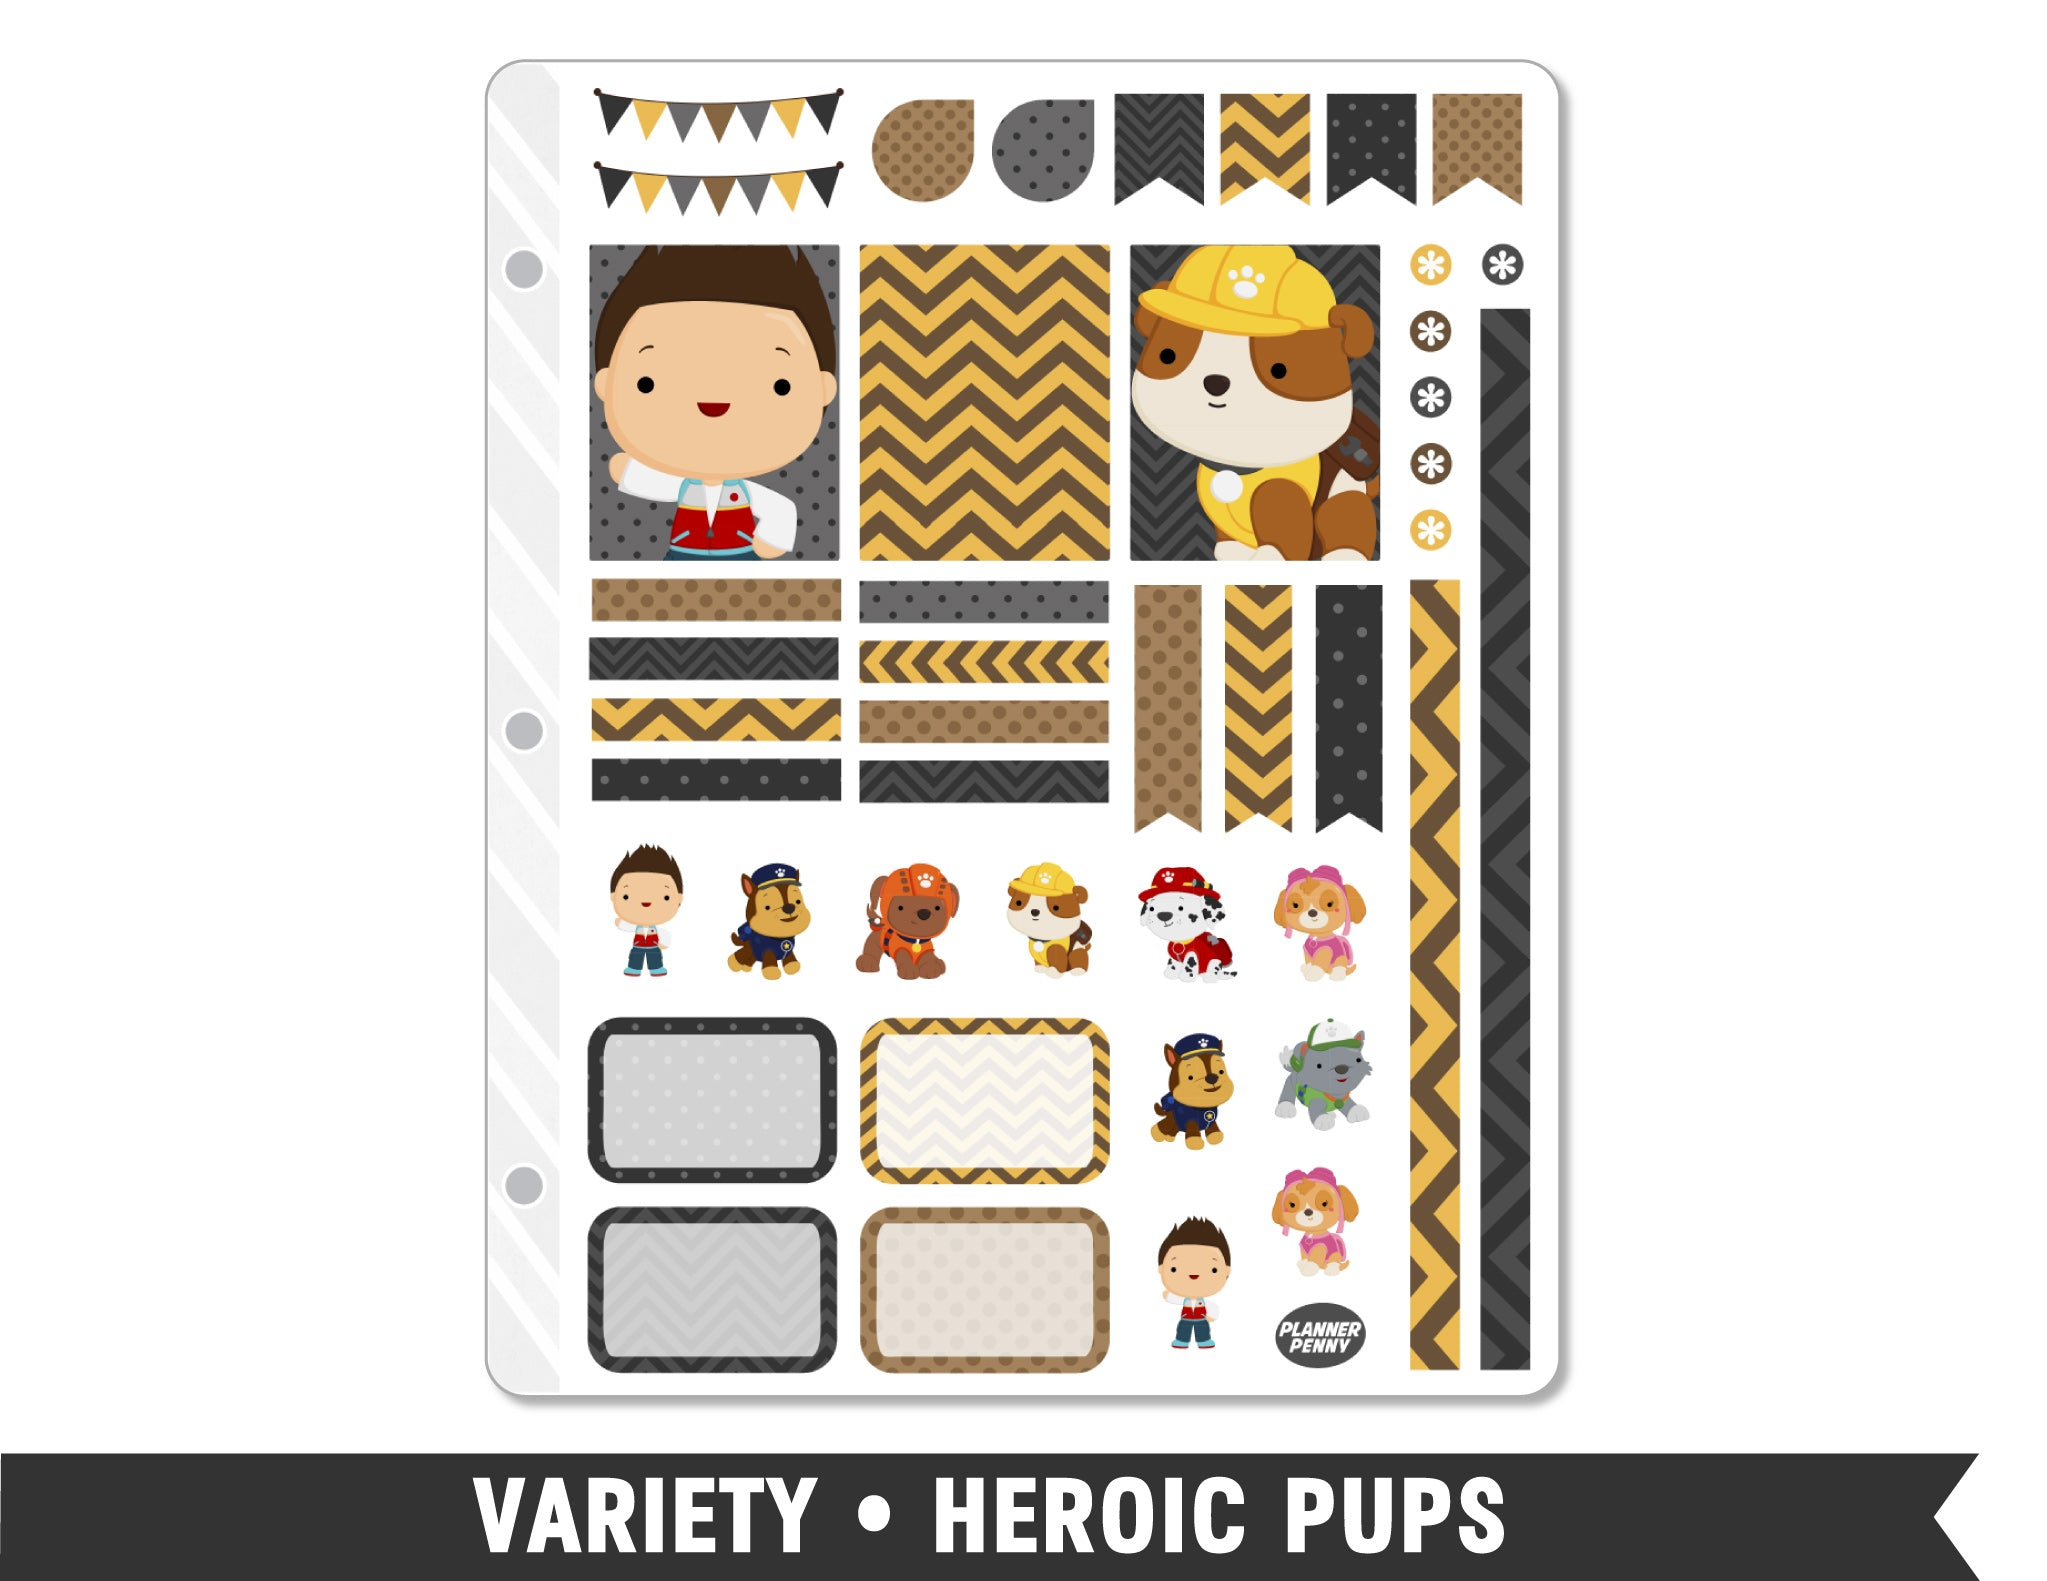 Variety • Heroic Pups Weekly Spread Planner Stickers - Planner Penny